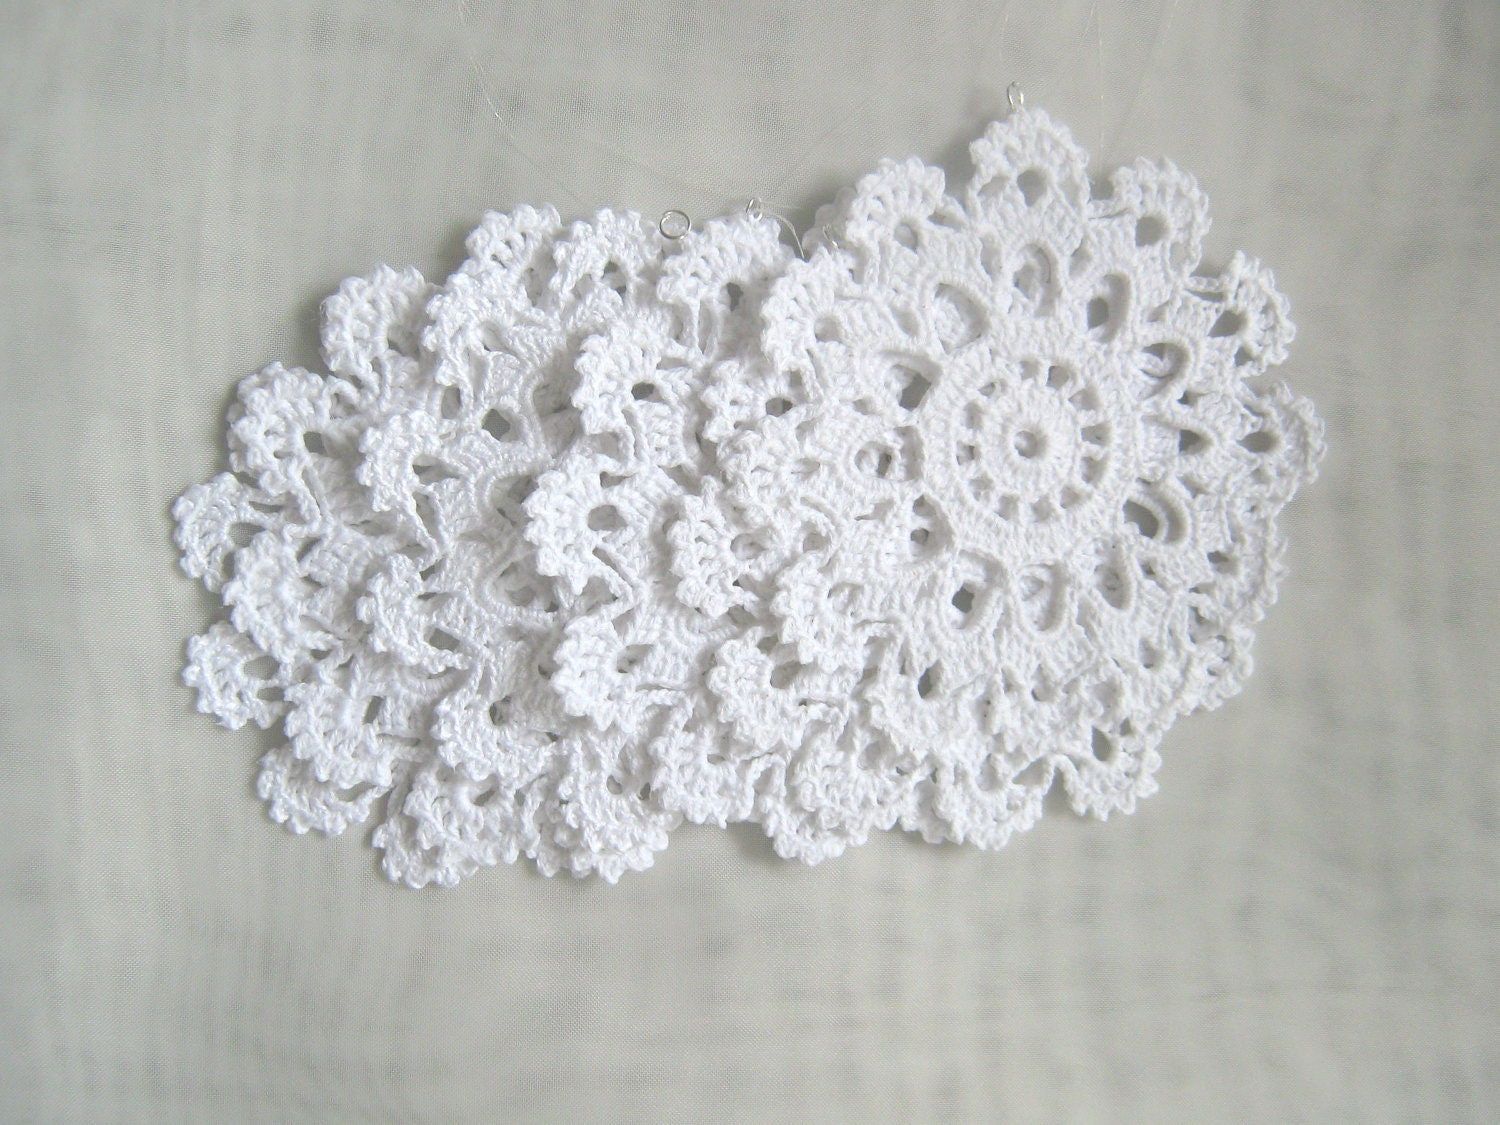 Decorative Crochet : Crochet snowflakes Christmas Decor Crochet by Benivision on Etsy